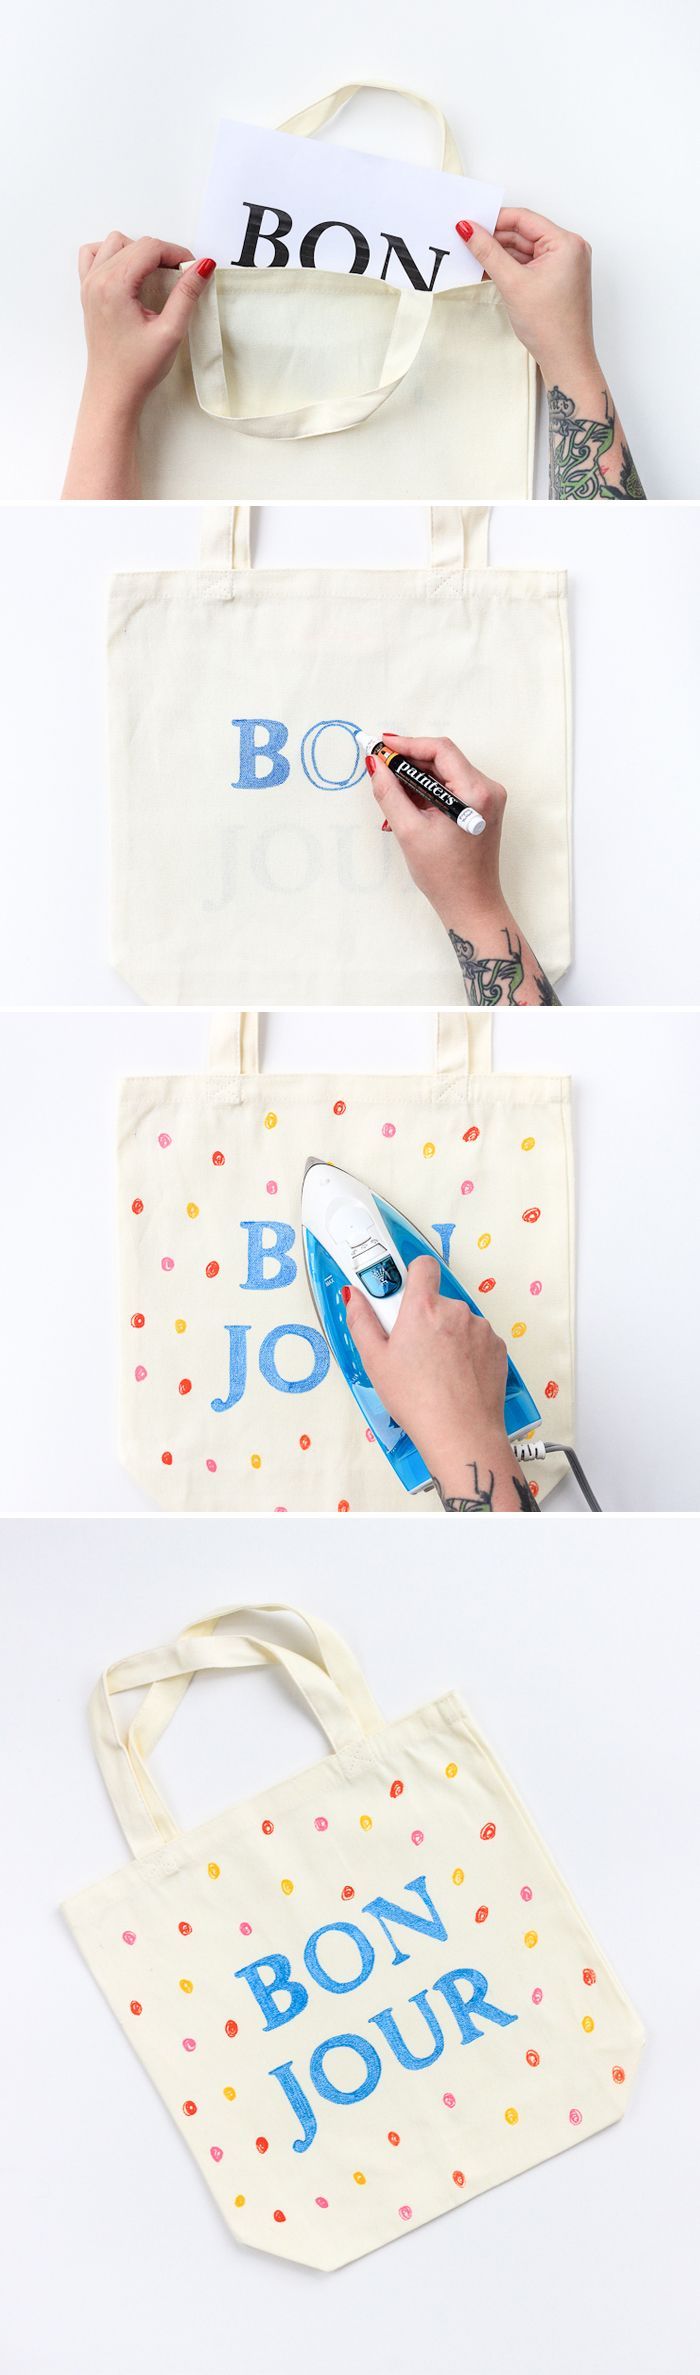 Learn to make this washable market tote in only 30 minutes! Use Painters paint markers to decorate a plain bag and set it with an iron for a custom, DIY tote that fits your style.